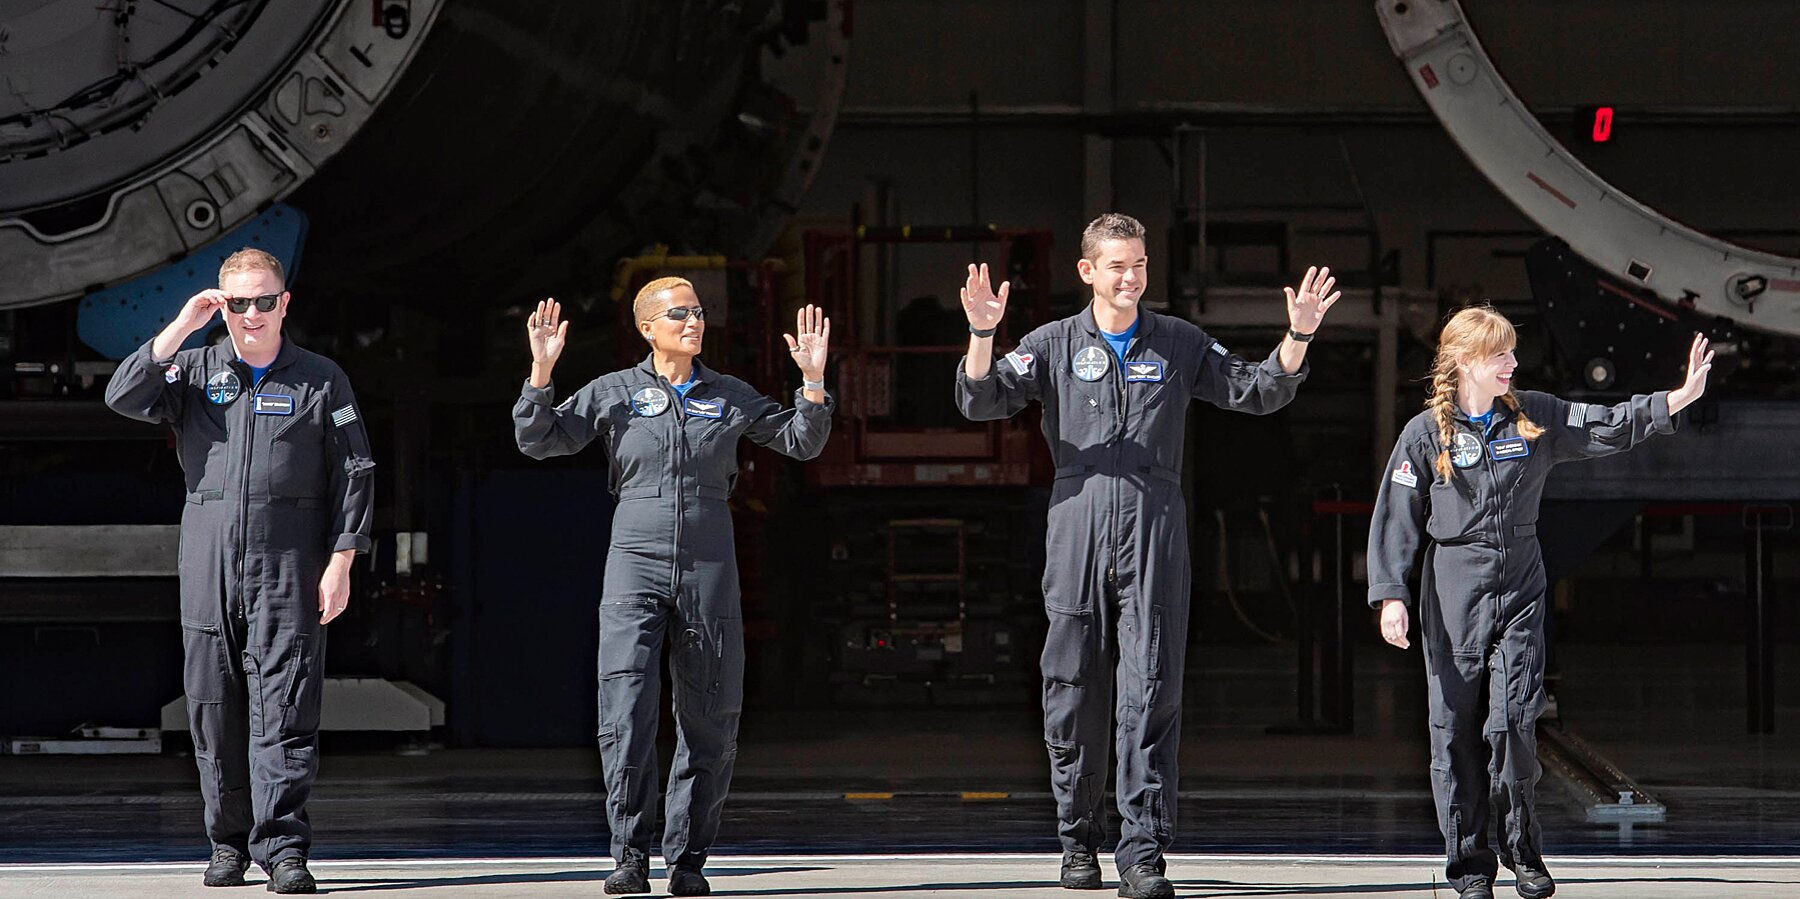 World's First All-civilian Space Crew Returns to Earth After Successful Mission